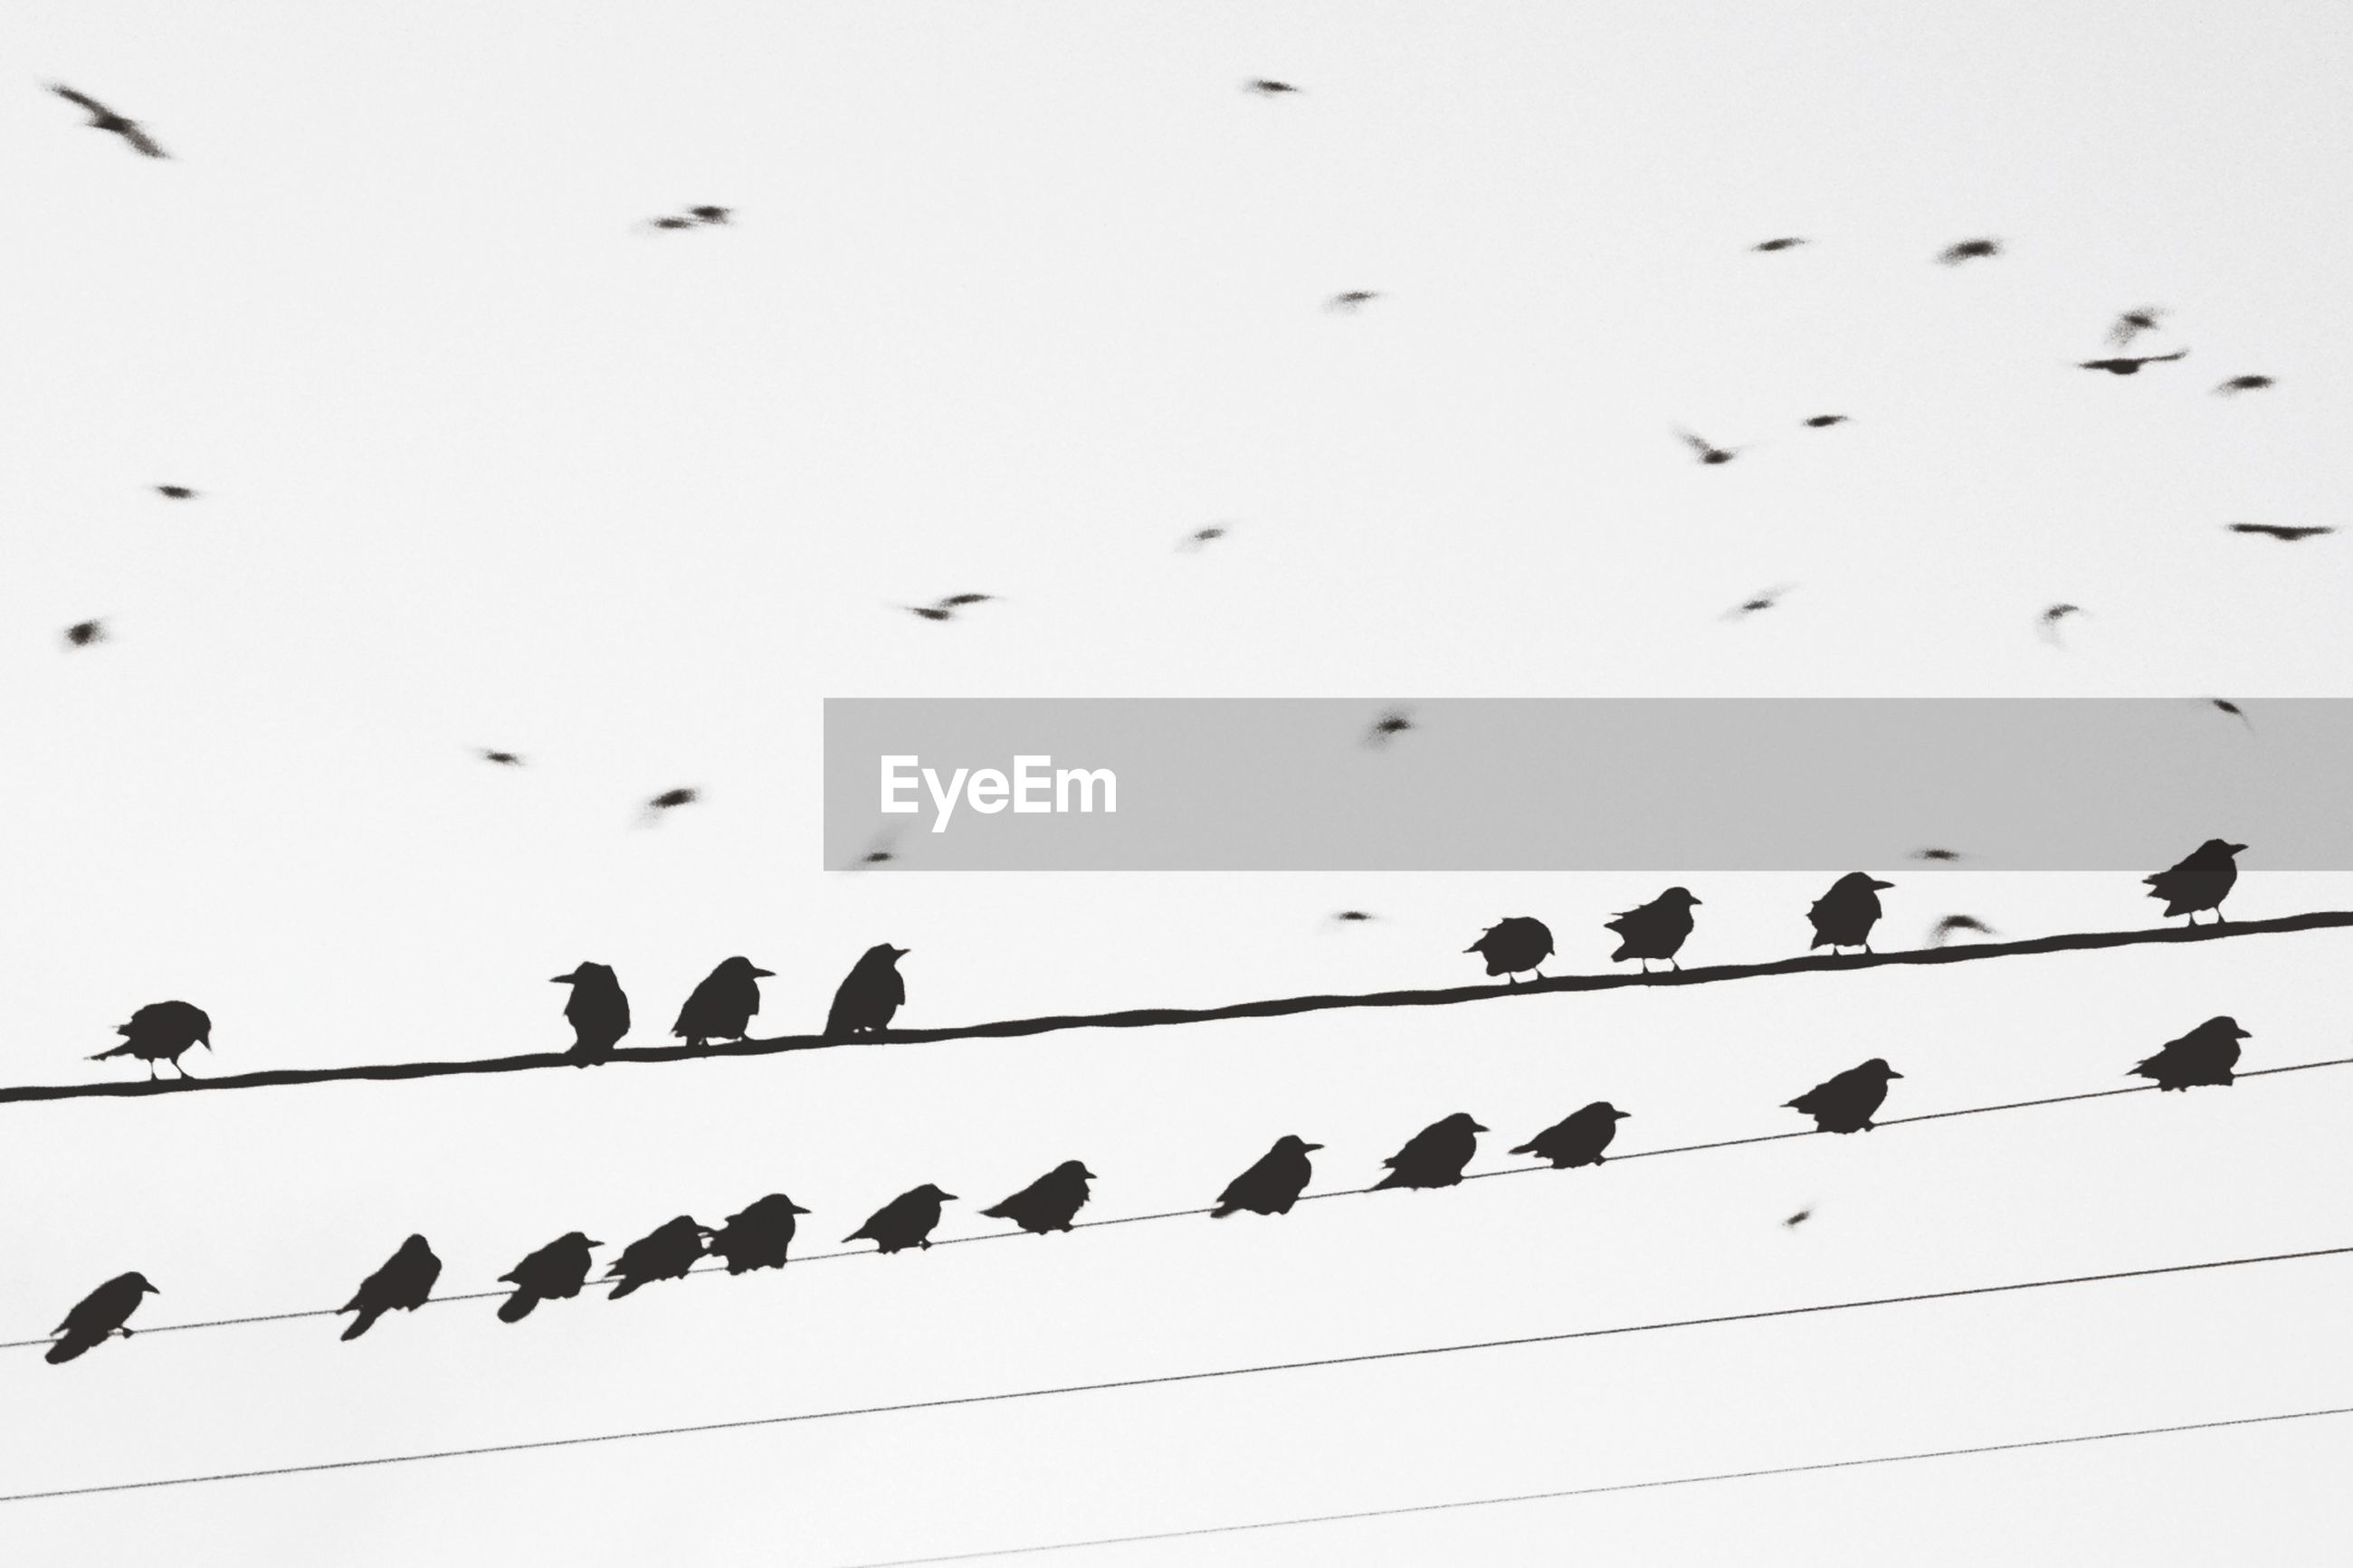 Row of birds on electric wire against clear sky